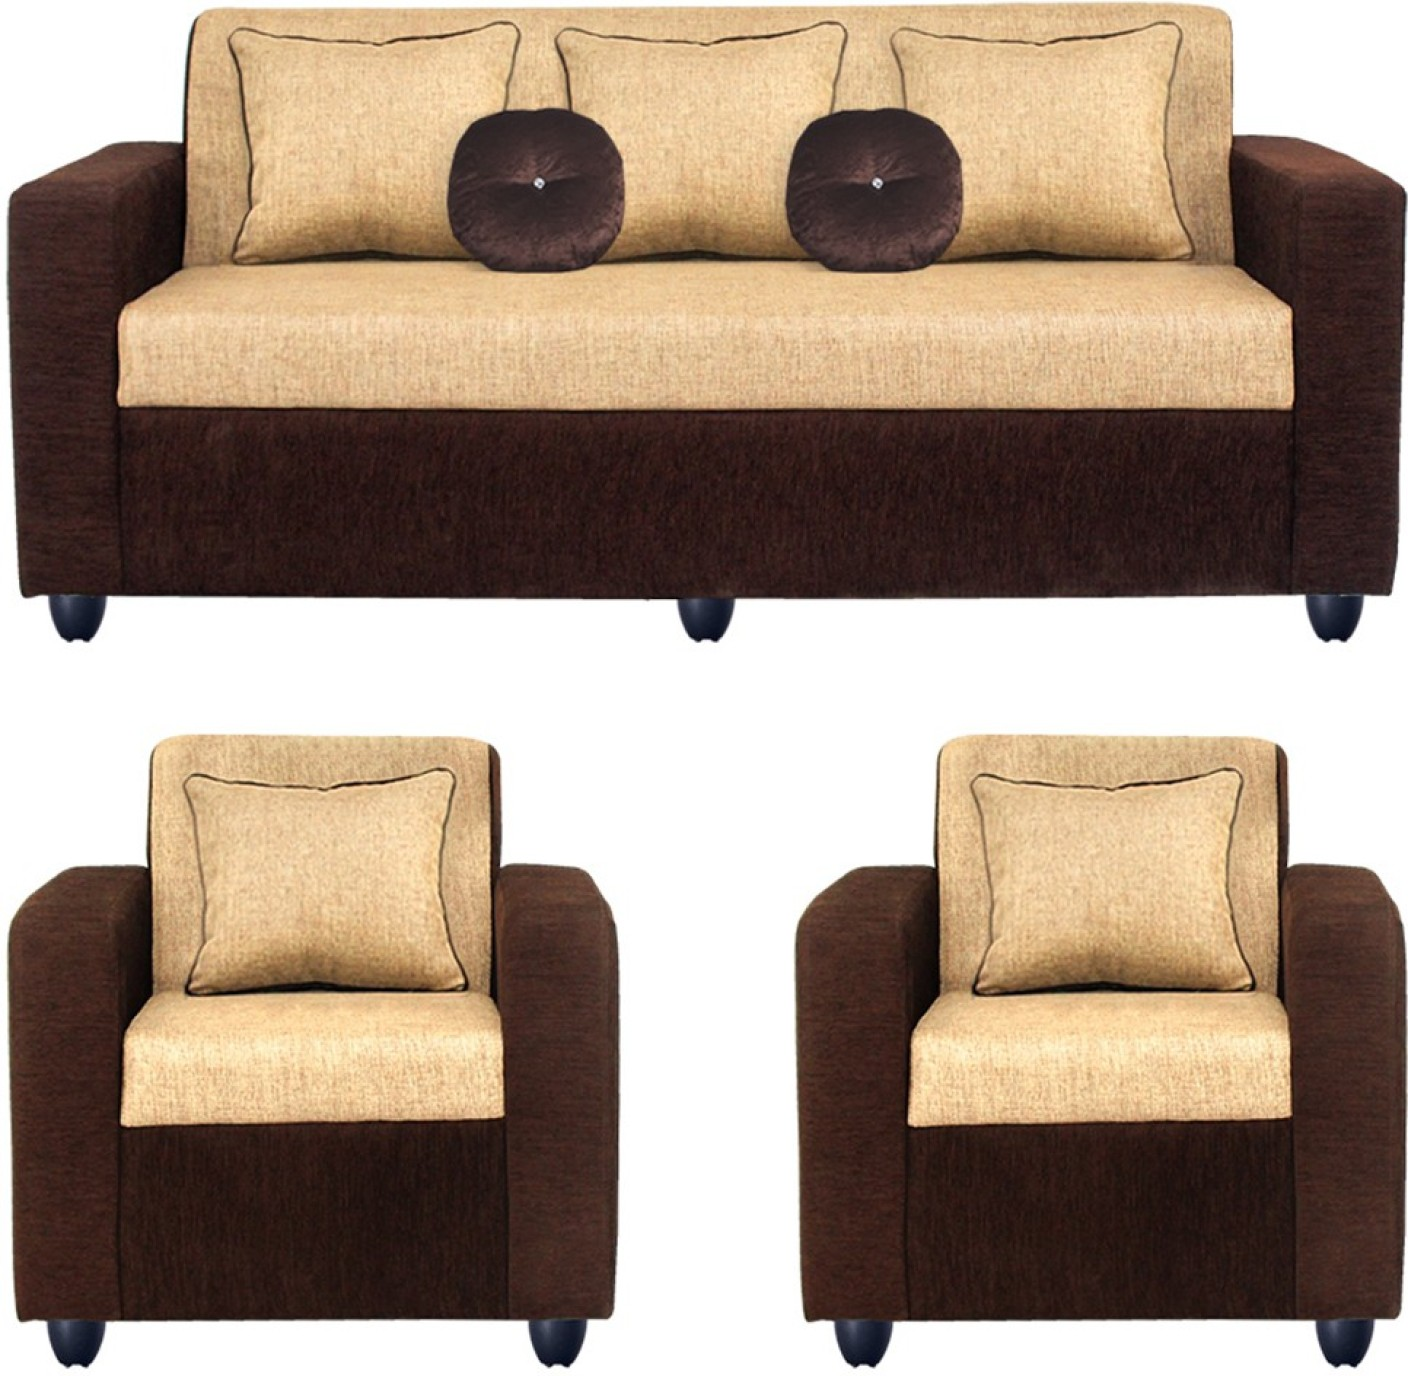 Bharat Lifestyle Fabric 3 + 1 + 1 Cream Sofa Set Price In